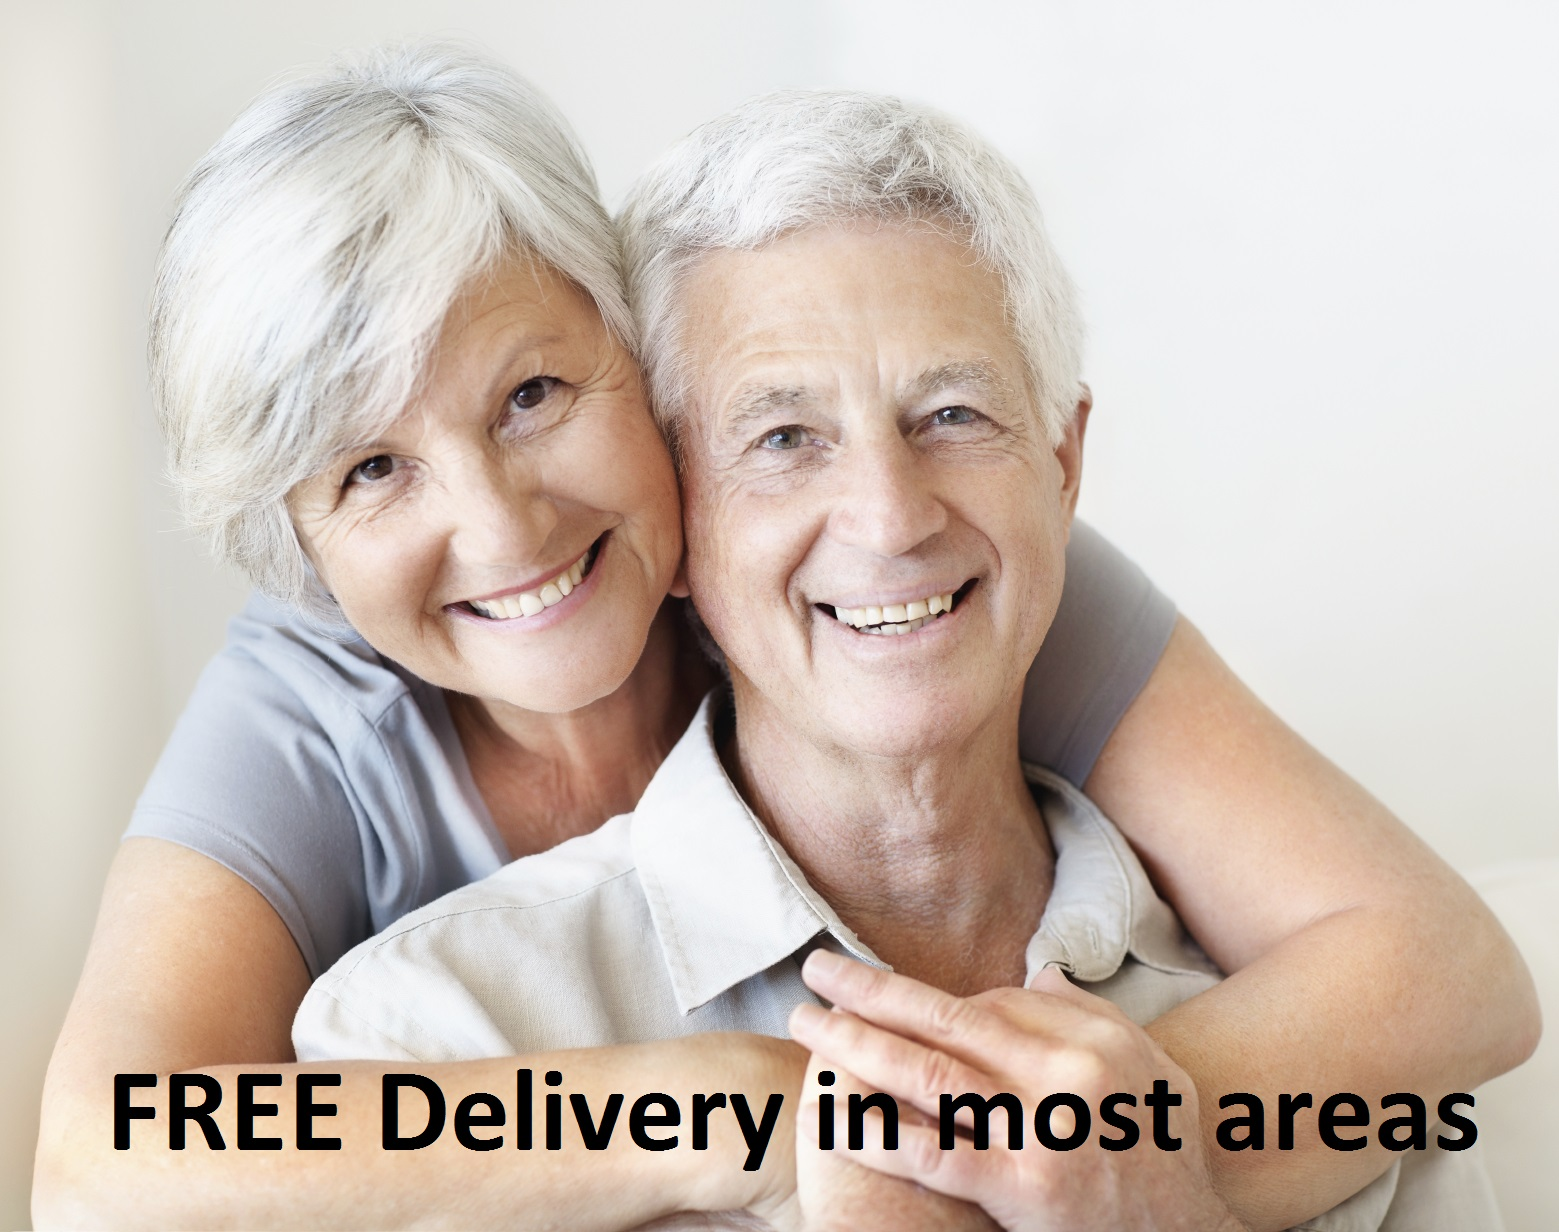 Free delivery of medical supplies in baltimore maryland | Washington DC | Baltimore | Columbia Maryland (MD)